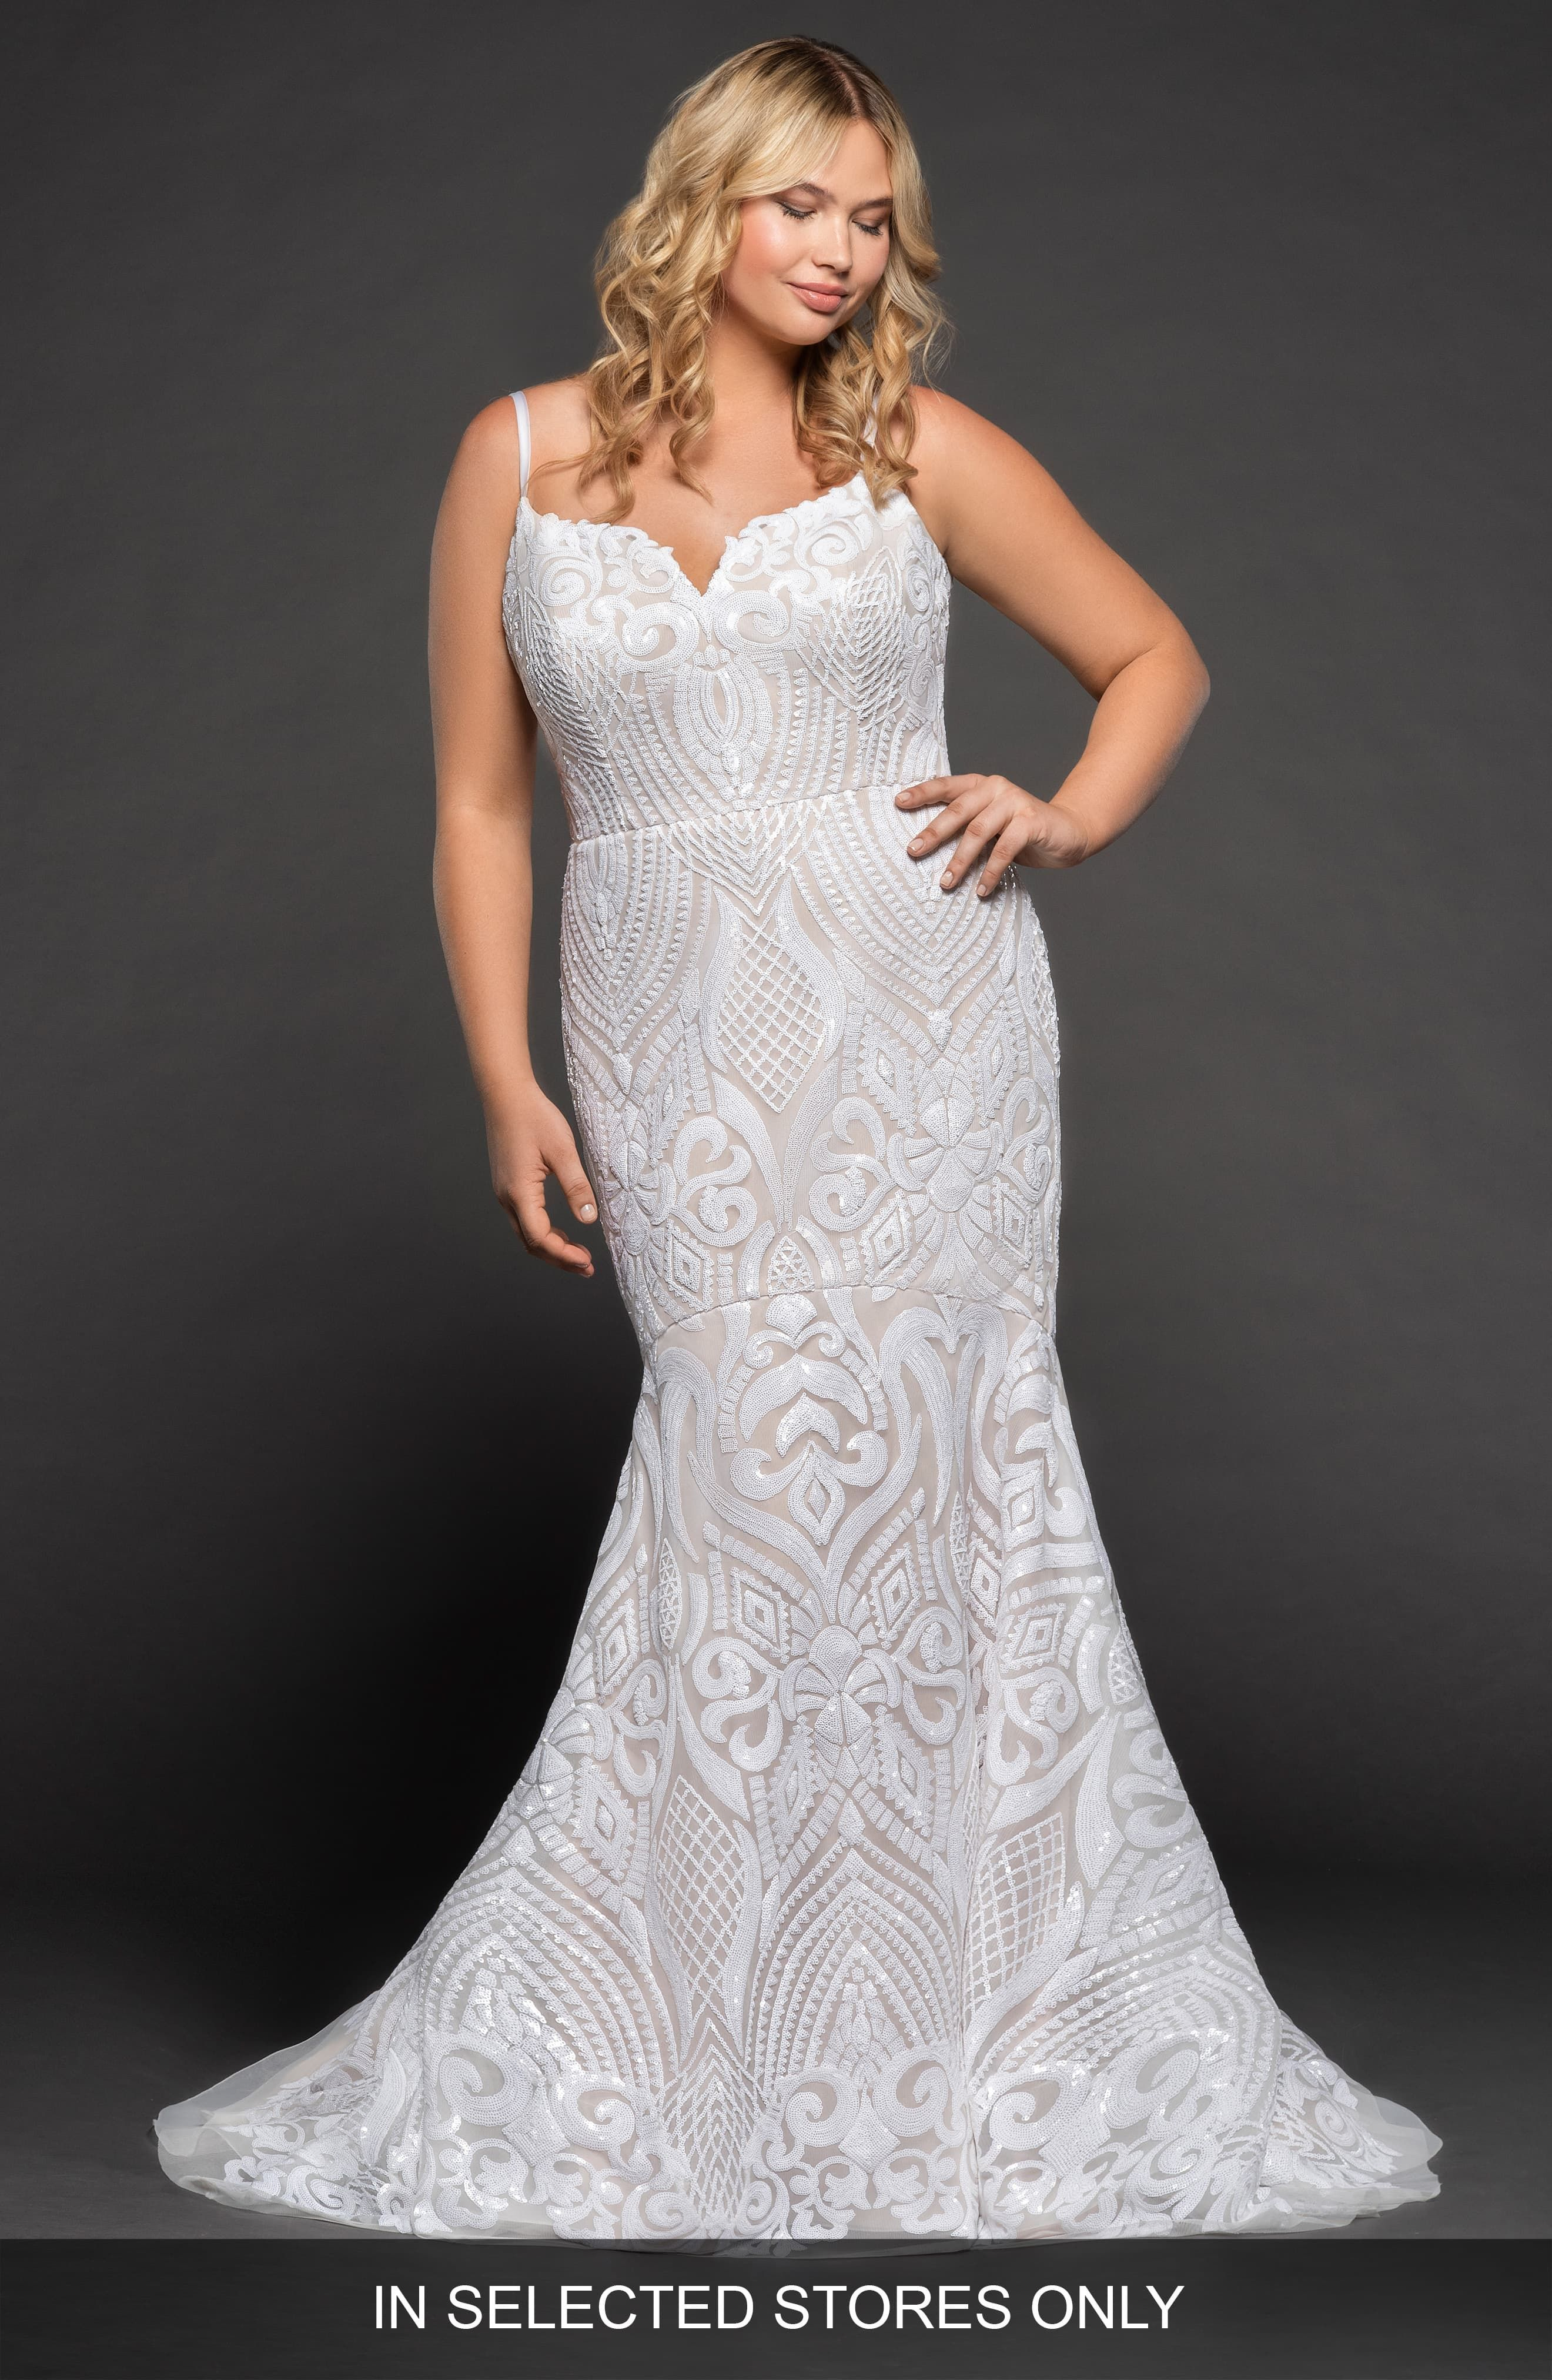 Plus Size Women S Blush By Hayley Paige West Mermaid Gown Size Ivory Fit And Flare Wedding Dress Fitted Wedding Dress Wedding Dresses Kleinfeld [ 4048 x 2640 Pixel ]